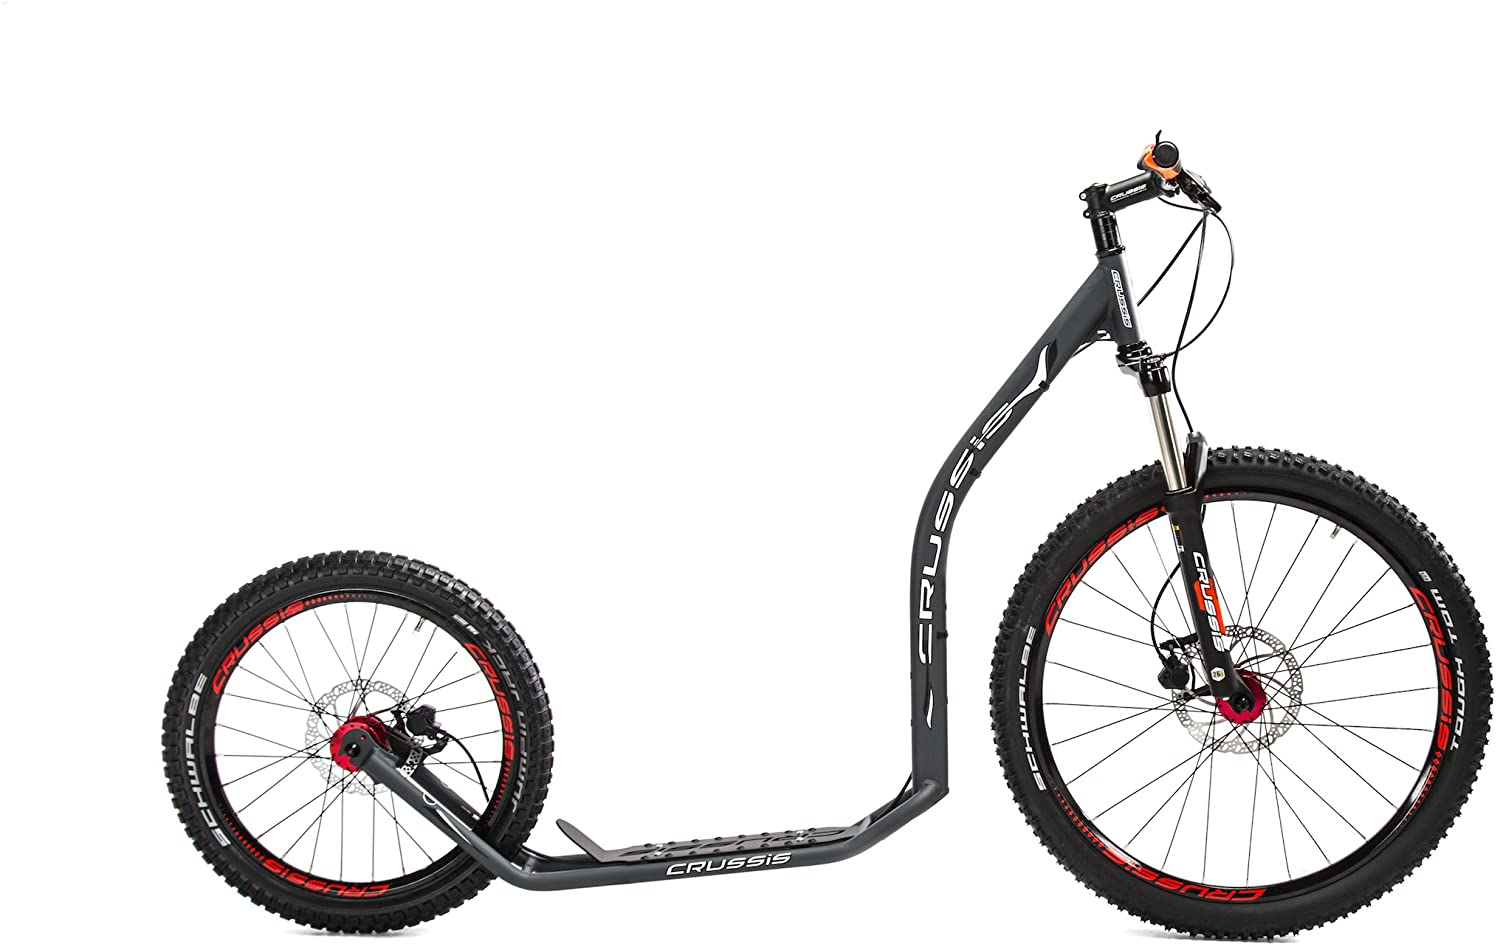 CRUSSIS CROSS TRETROLLER 6.3 ANTHRACITE 26/20 HD